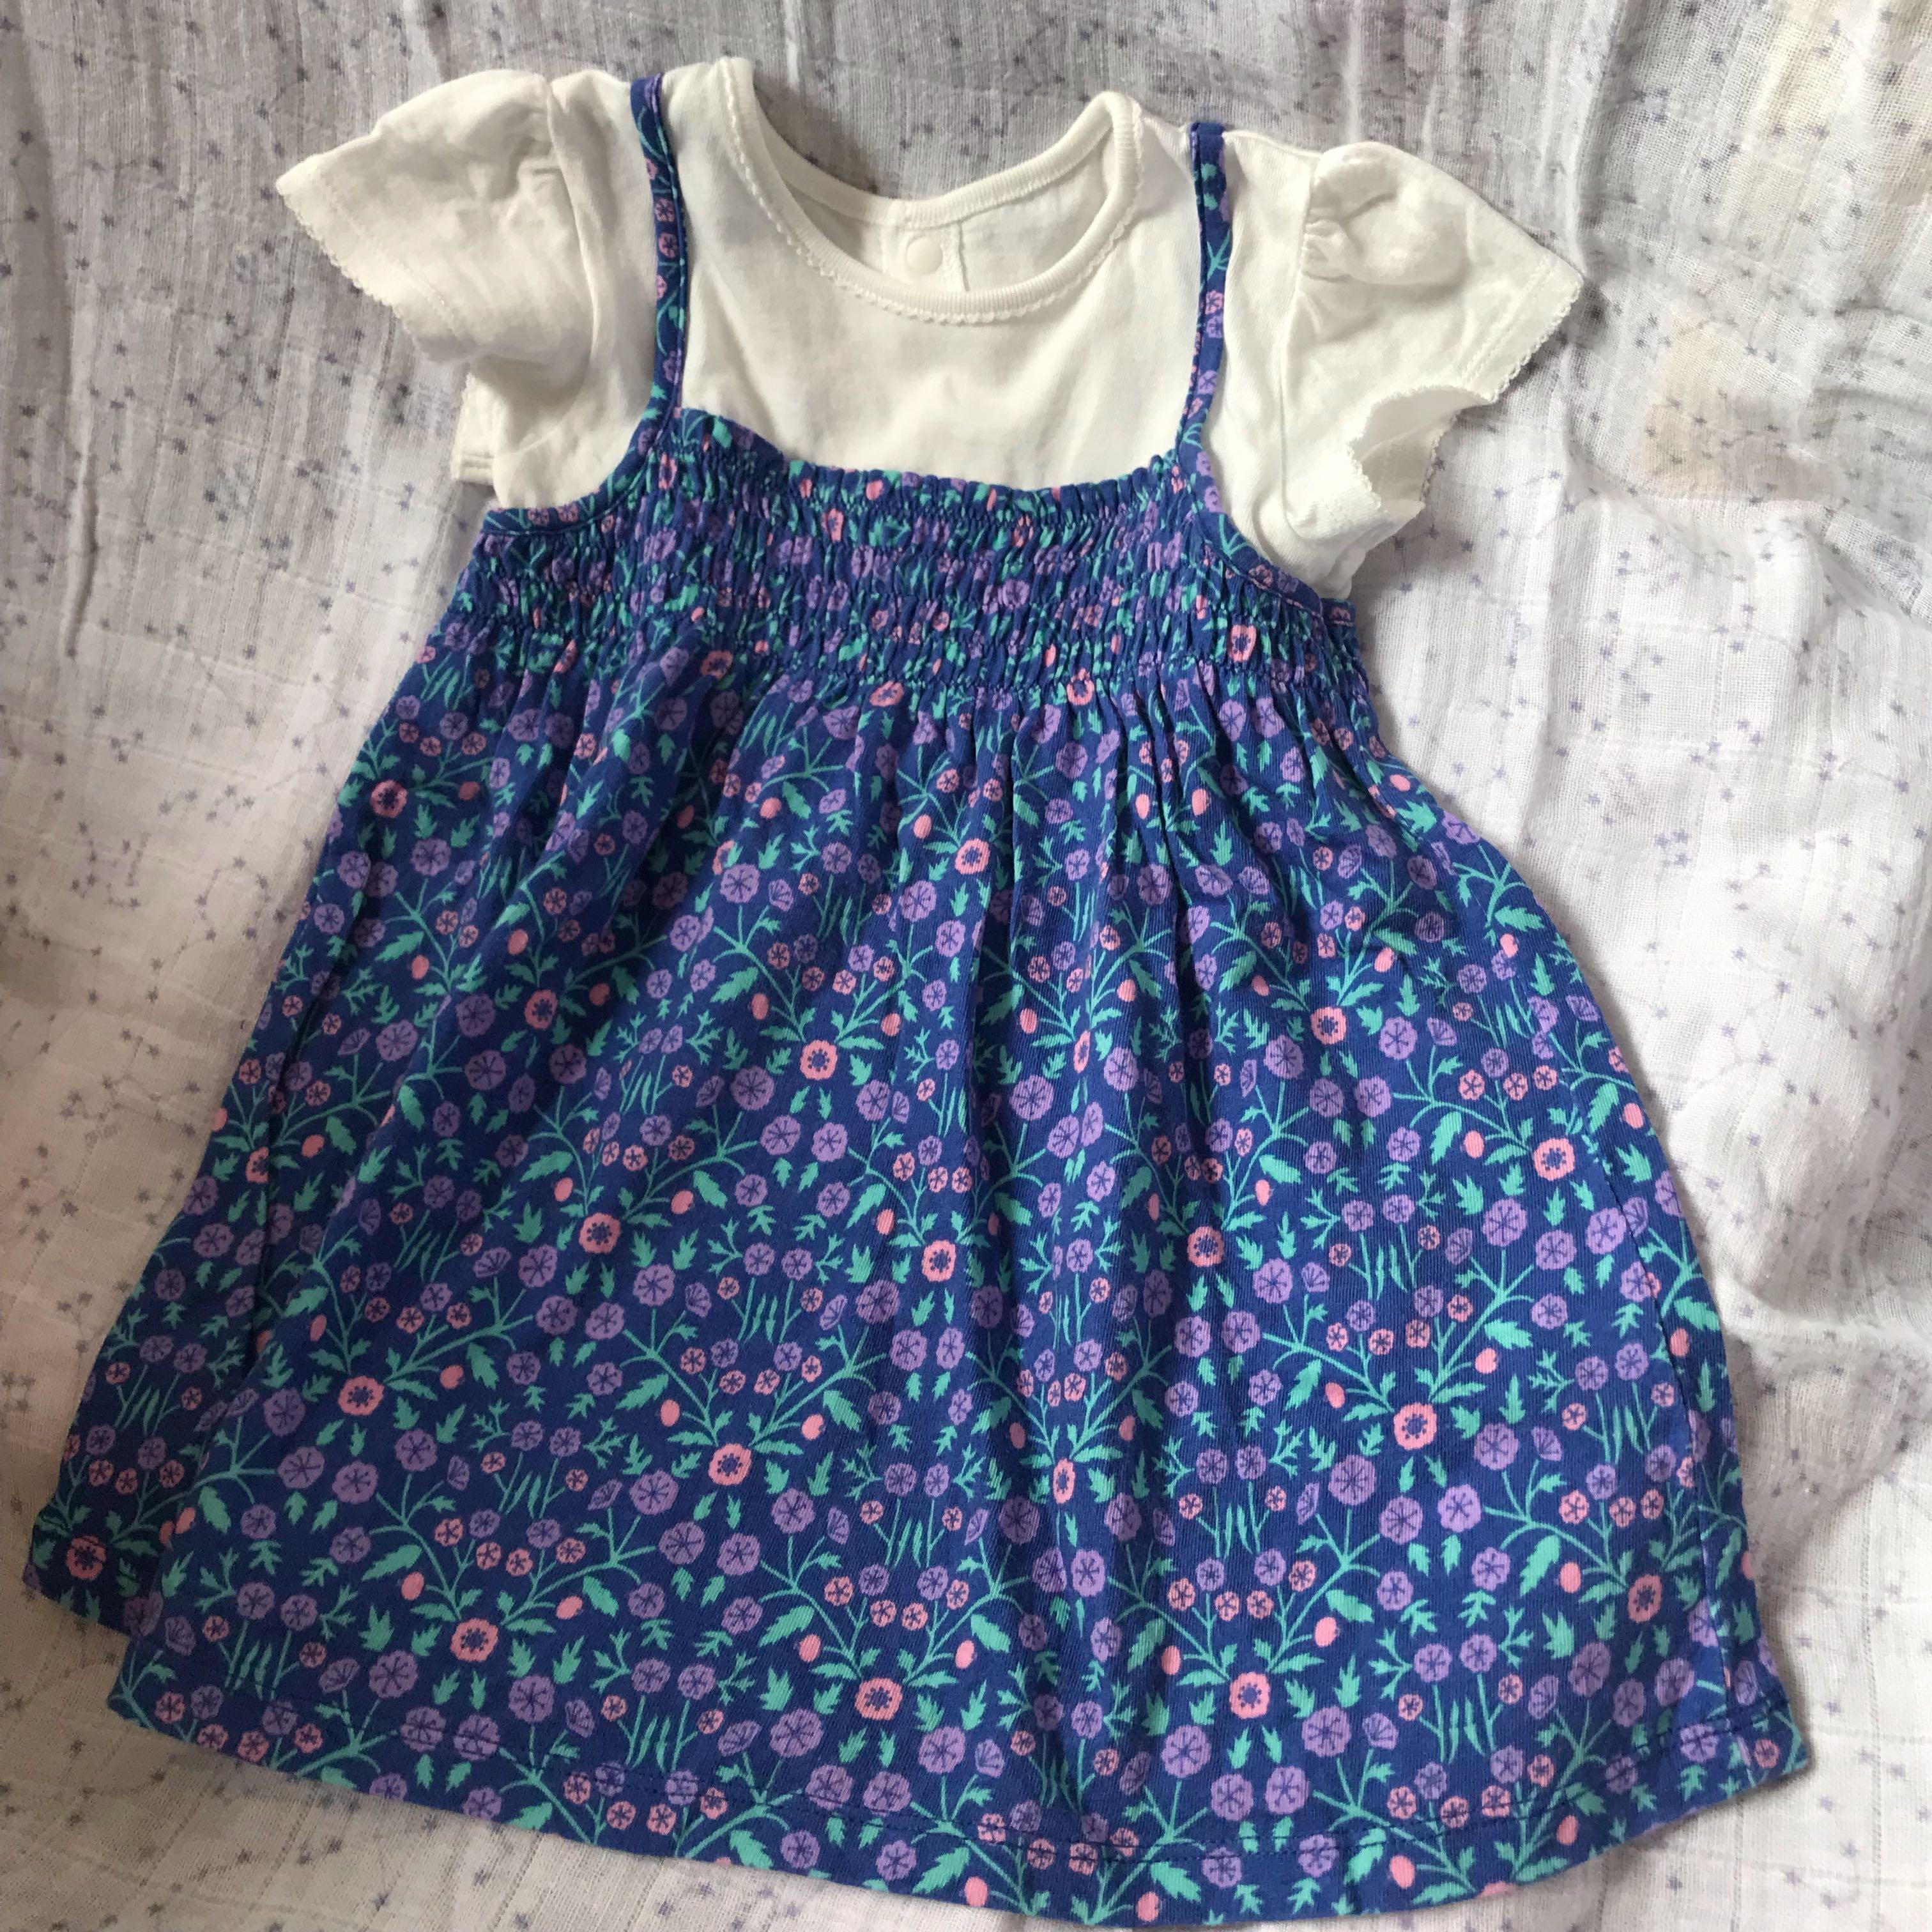 Uniqlo Baby Dress